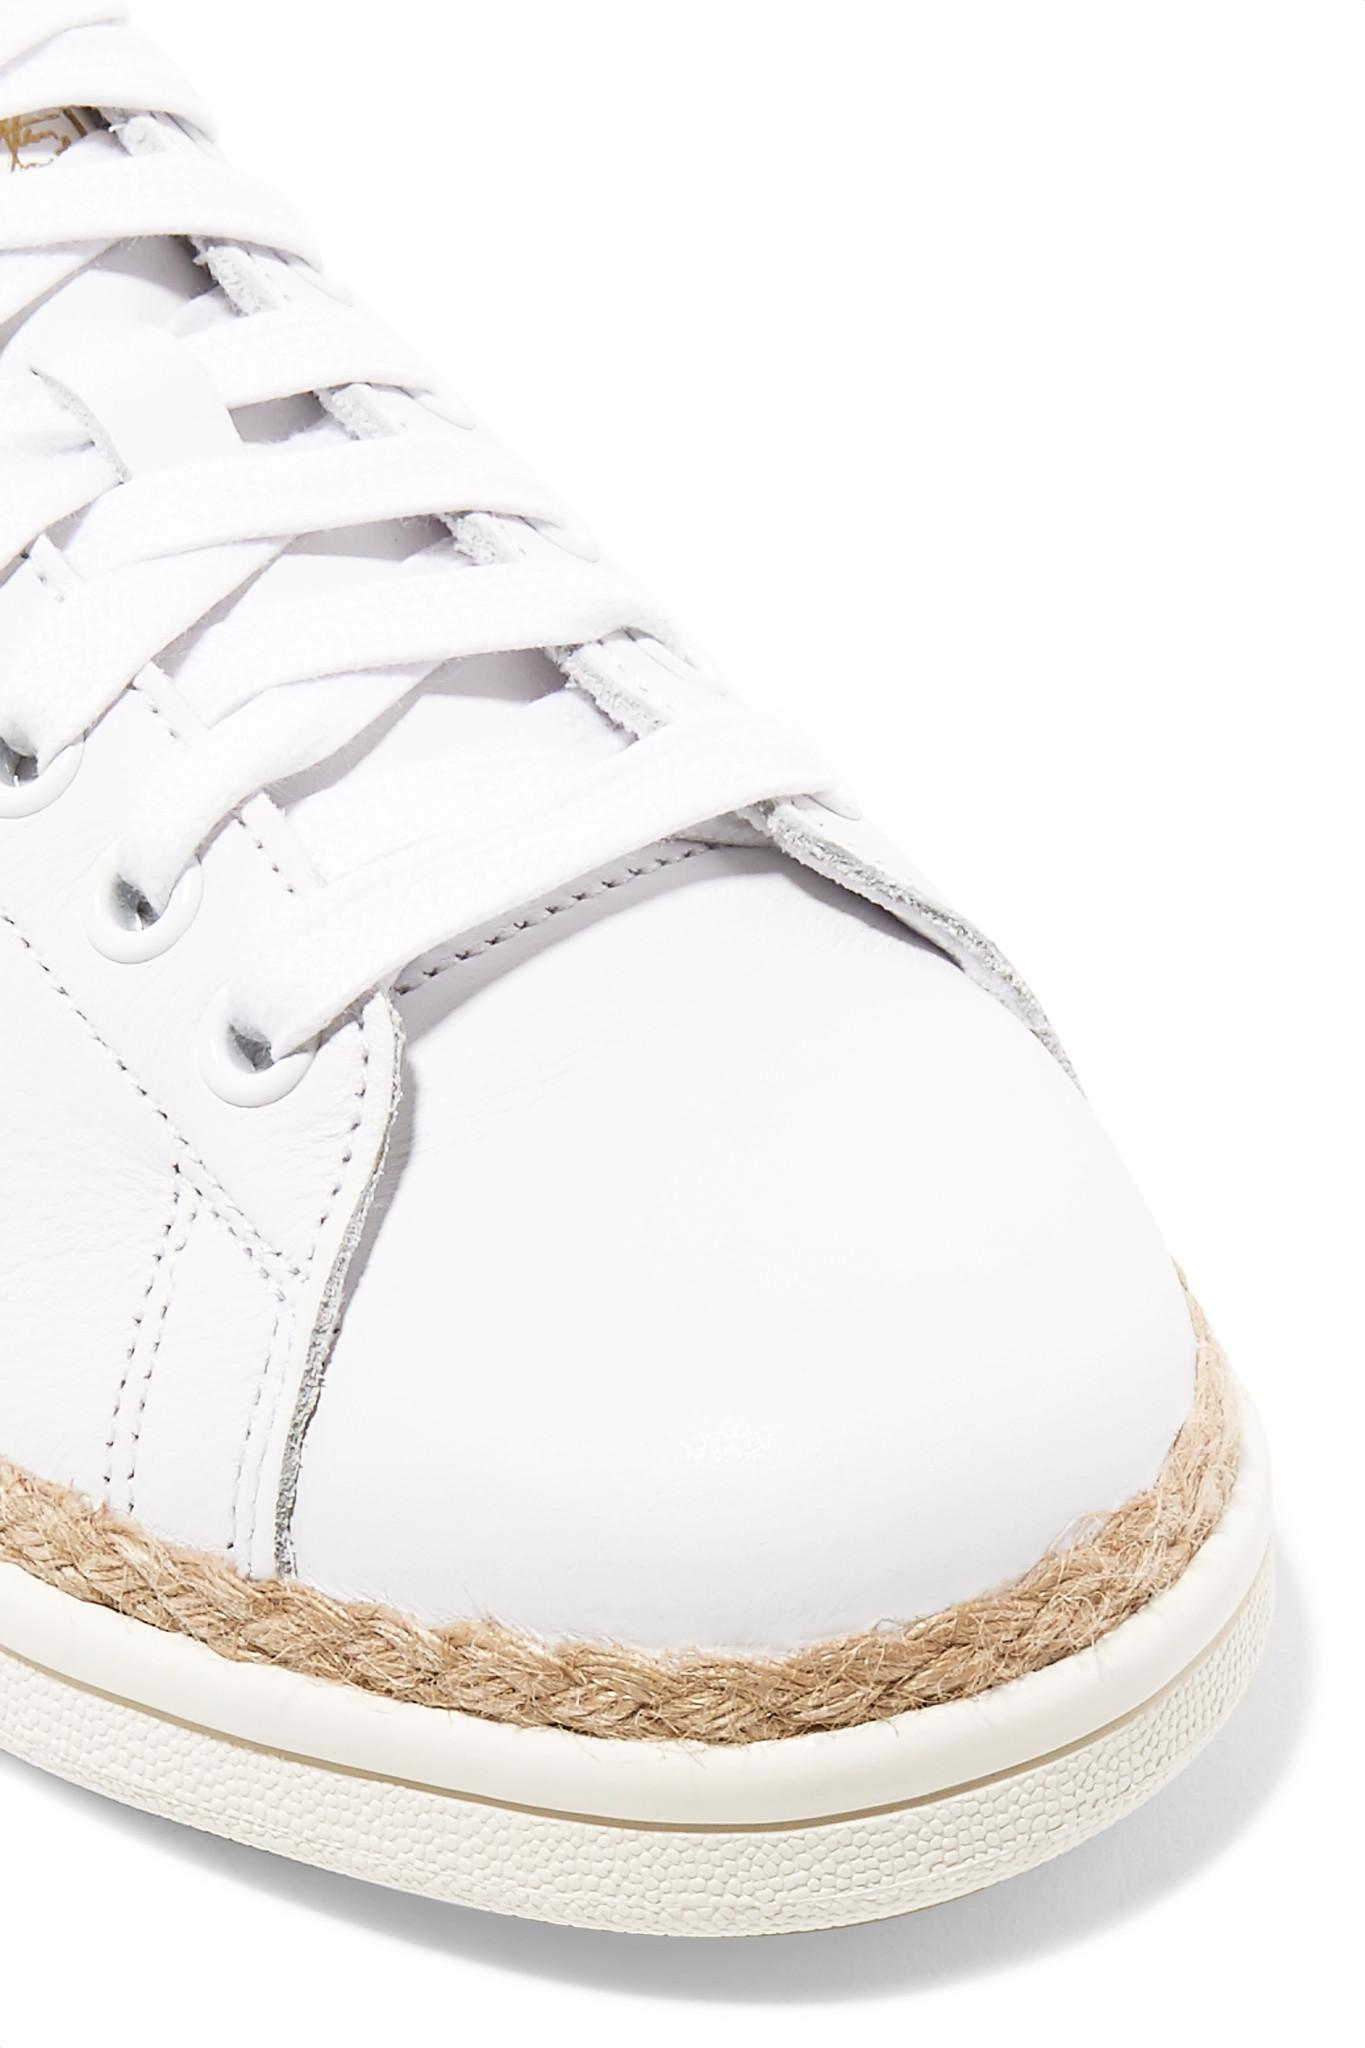 69069592504de1 Adidas Originals - White Stan Smith Bold Rope-trimmed Leather Sneakers -  Lyst. View fullscreen